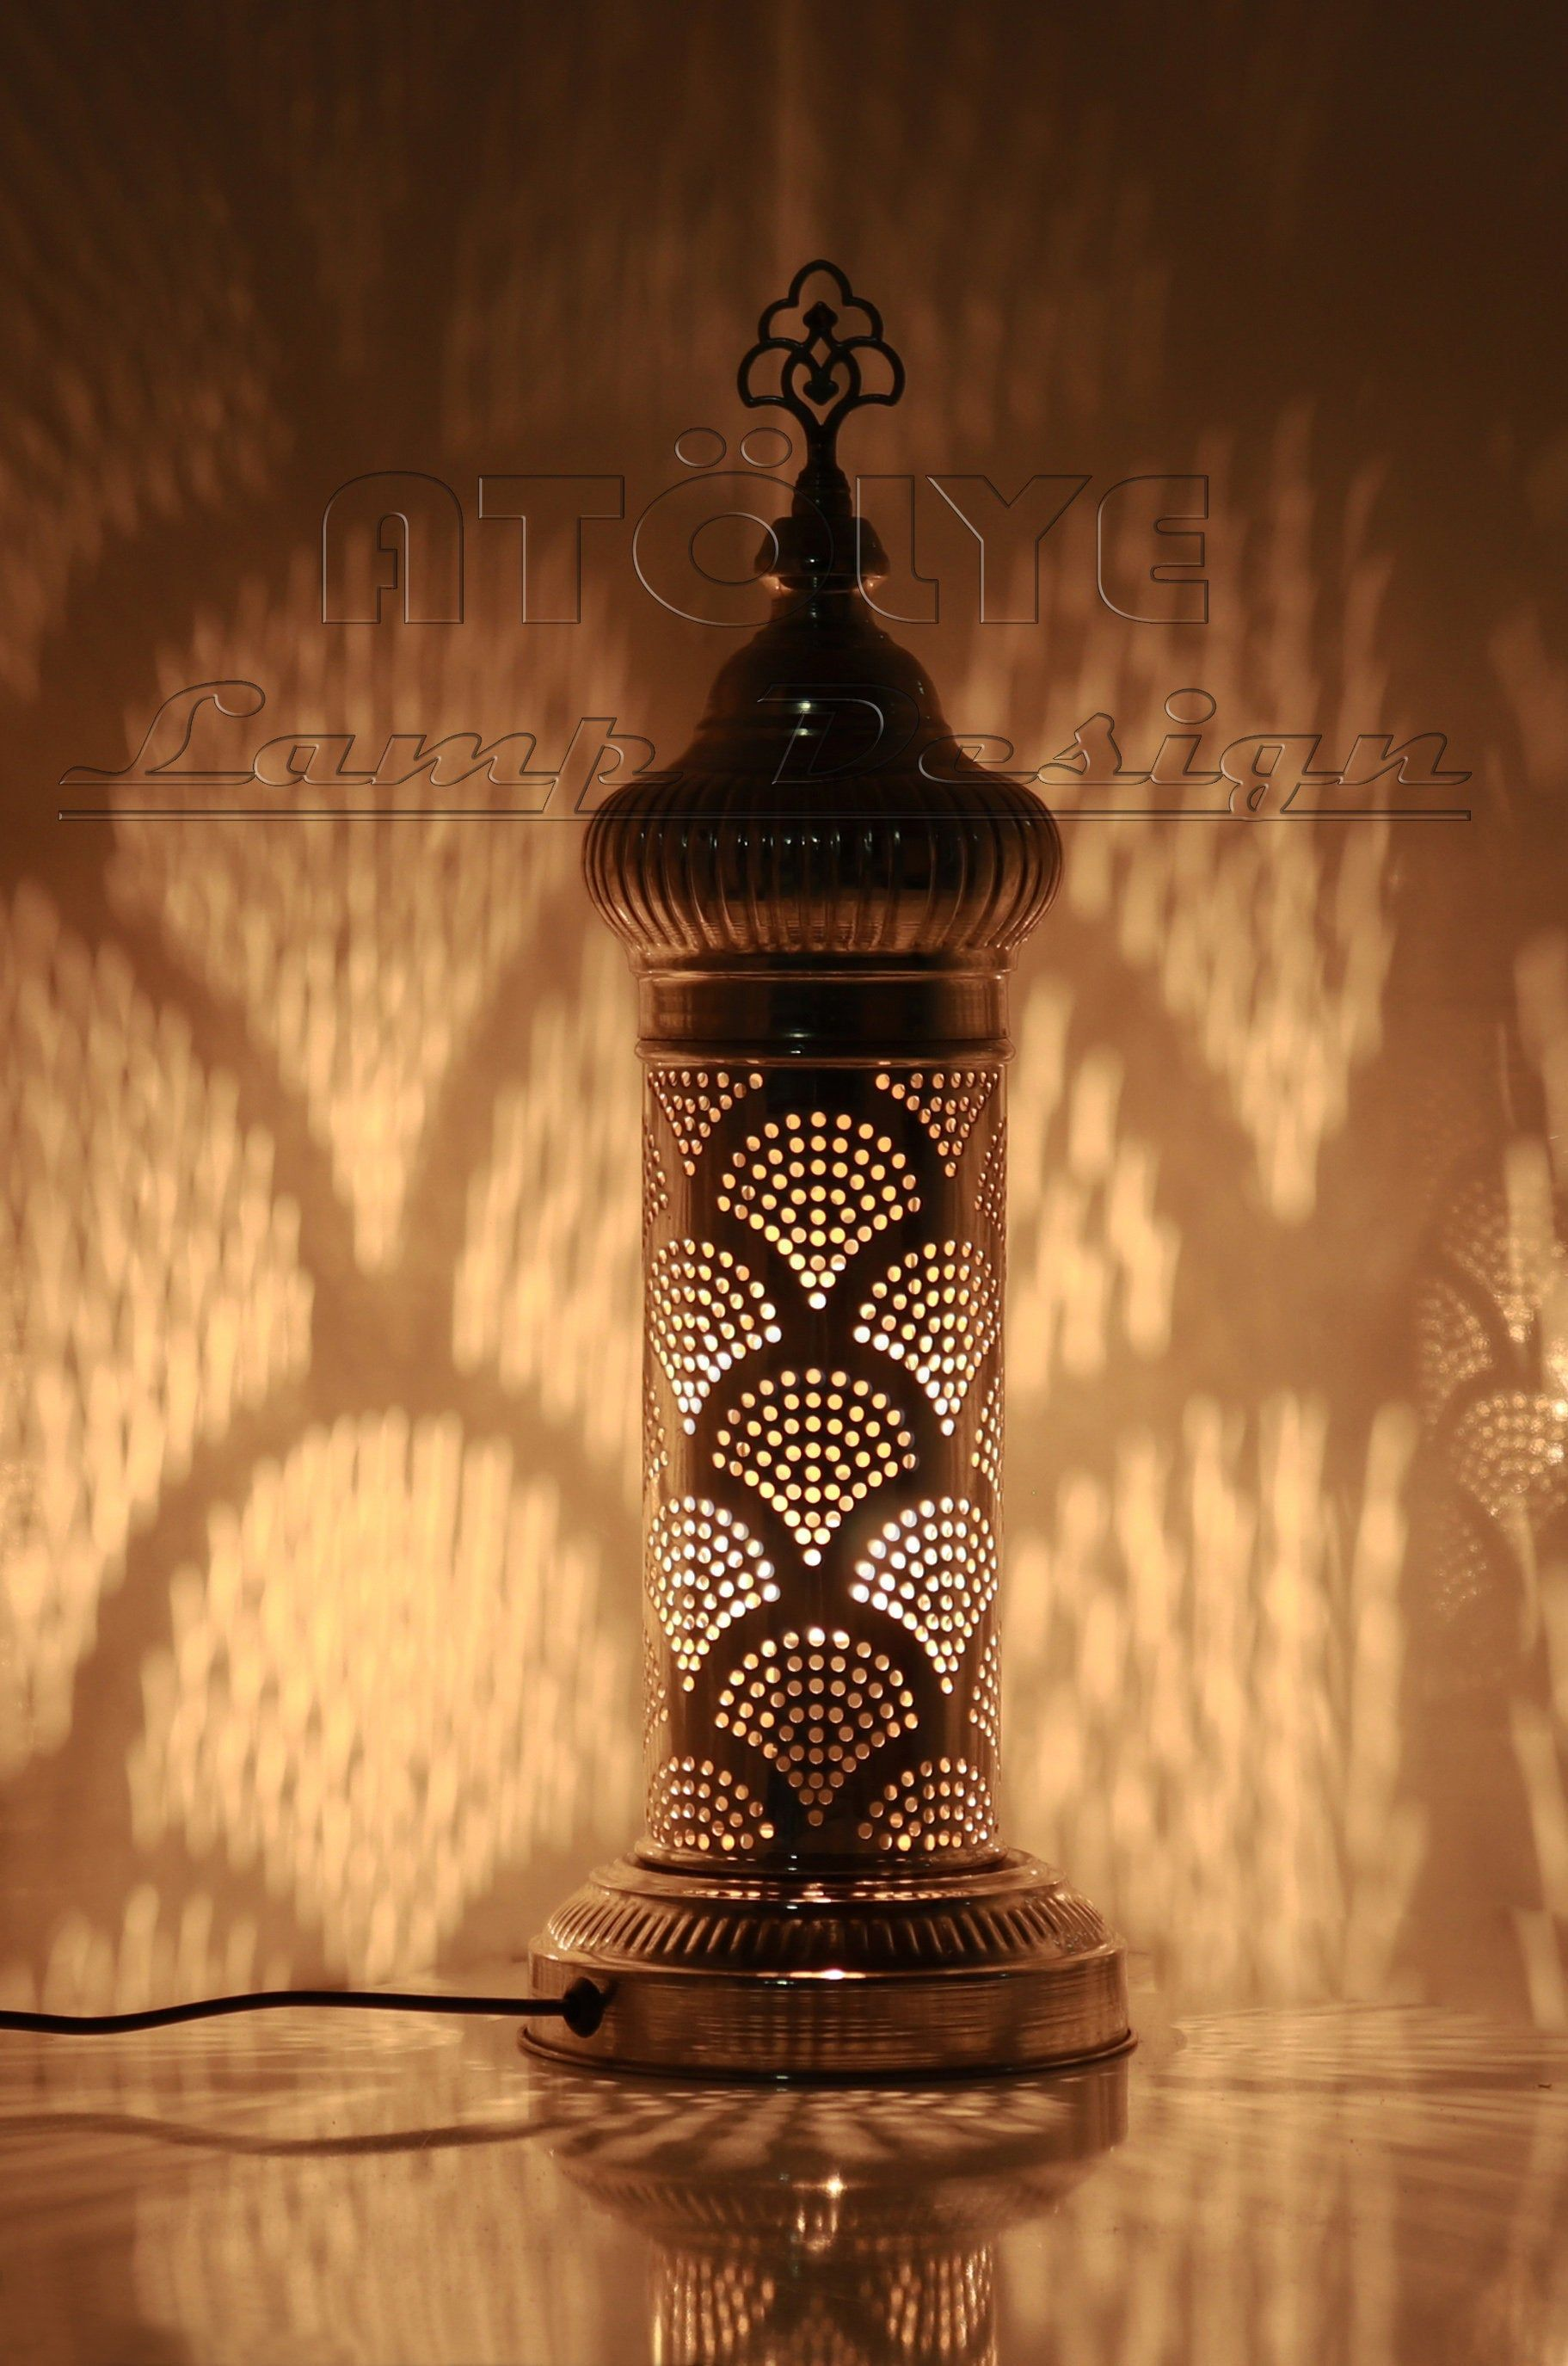 Turkish Table Lamp Moroccan Table Lamp Unique Lamp Bedside Lamp